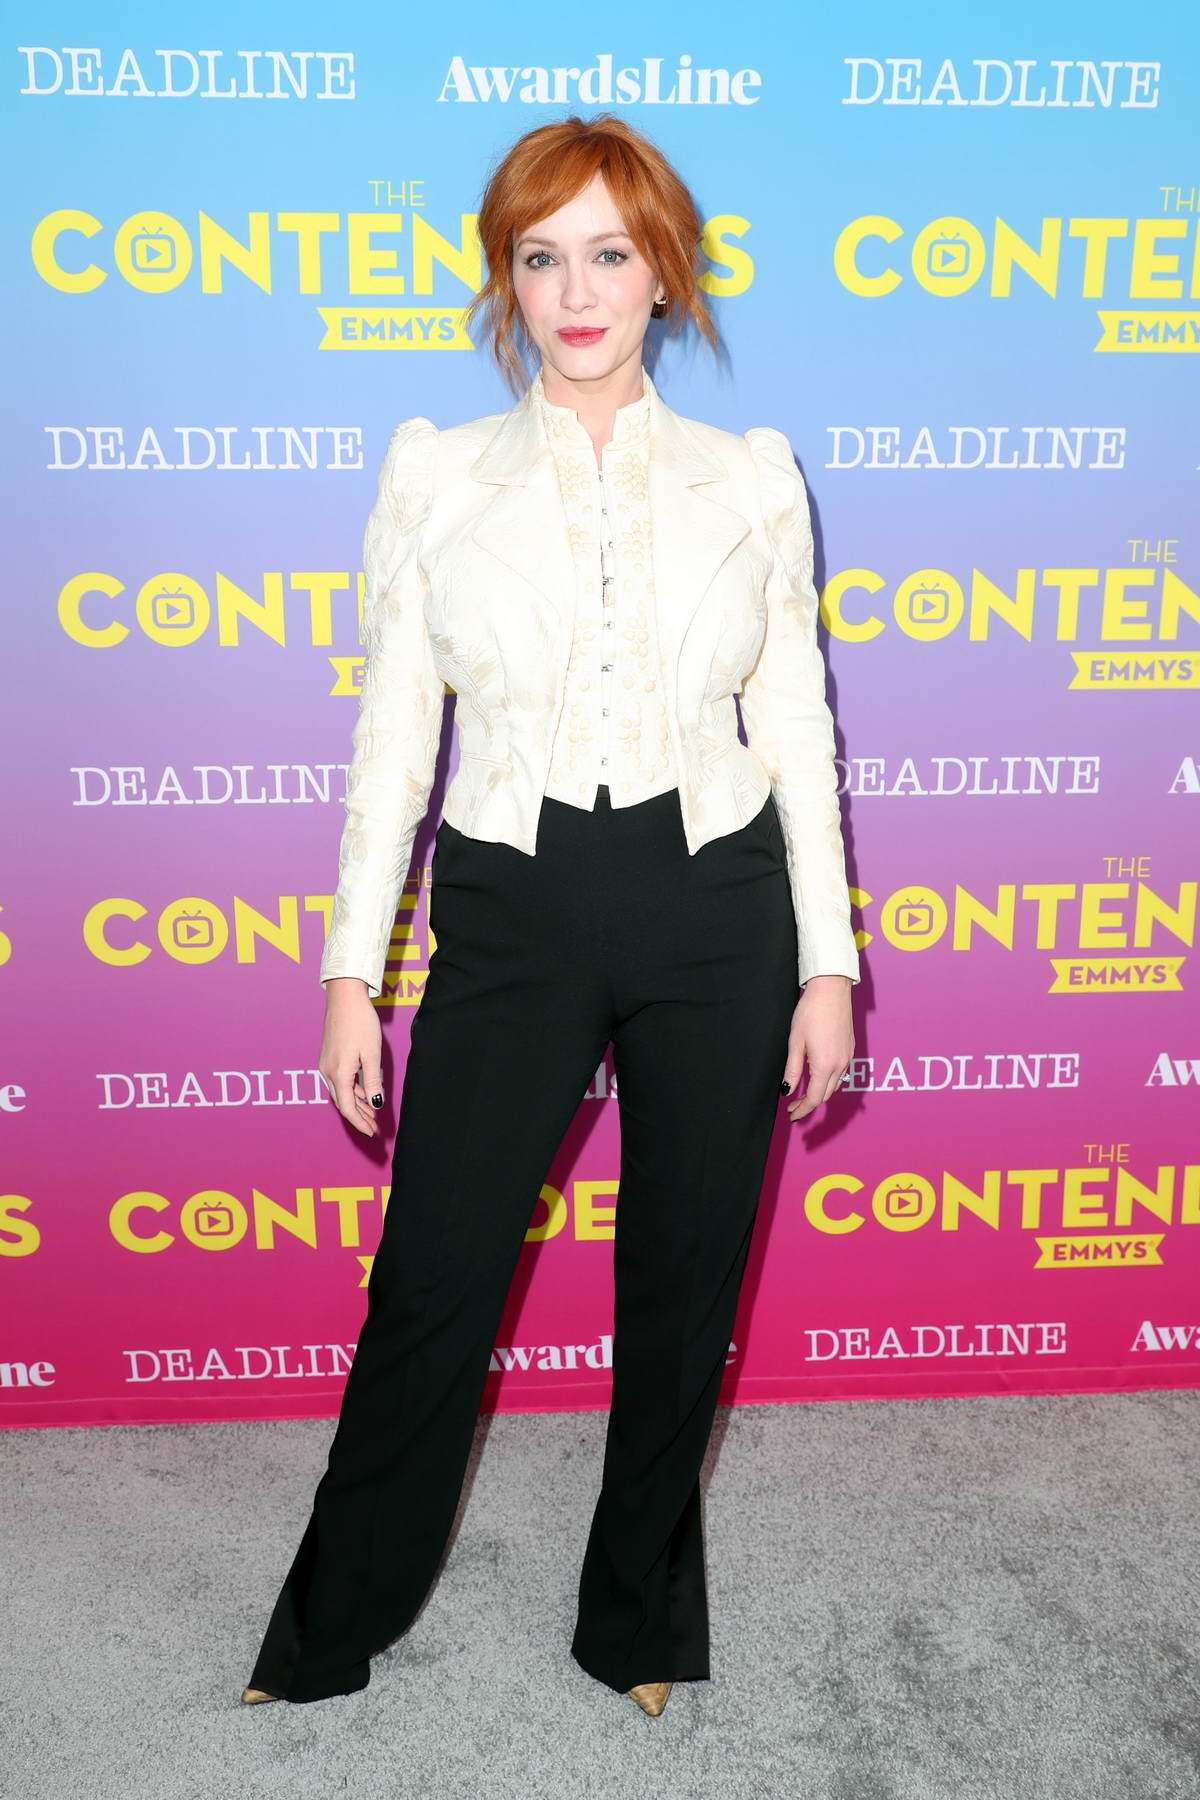 Christina Hendricks attends Deadline Contenders Emmy Event at Paramount Theatre in Los Angeles